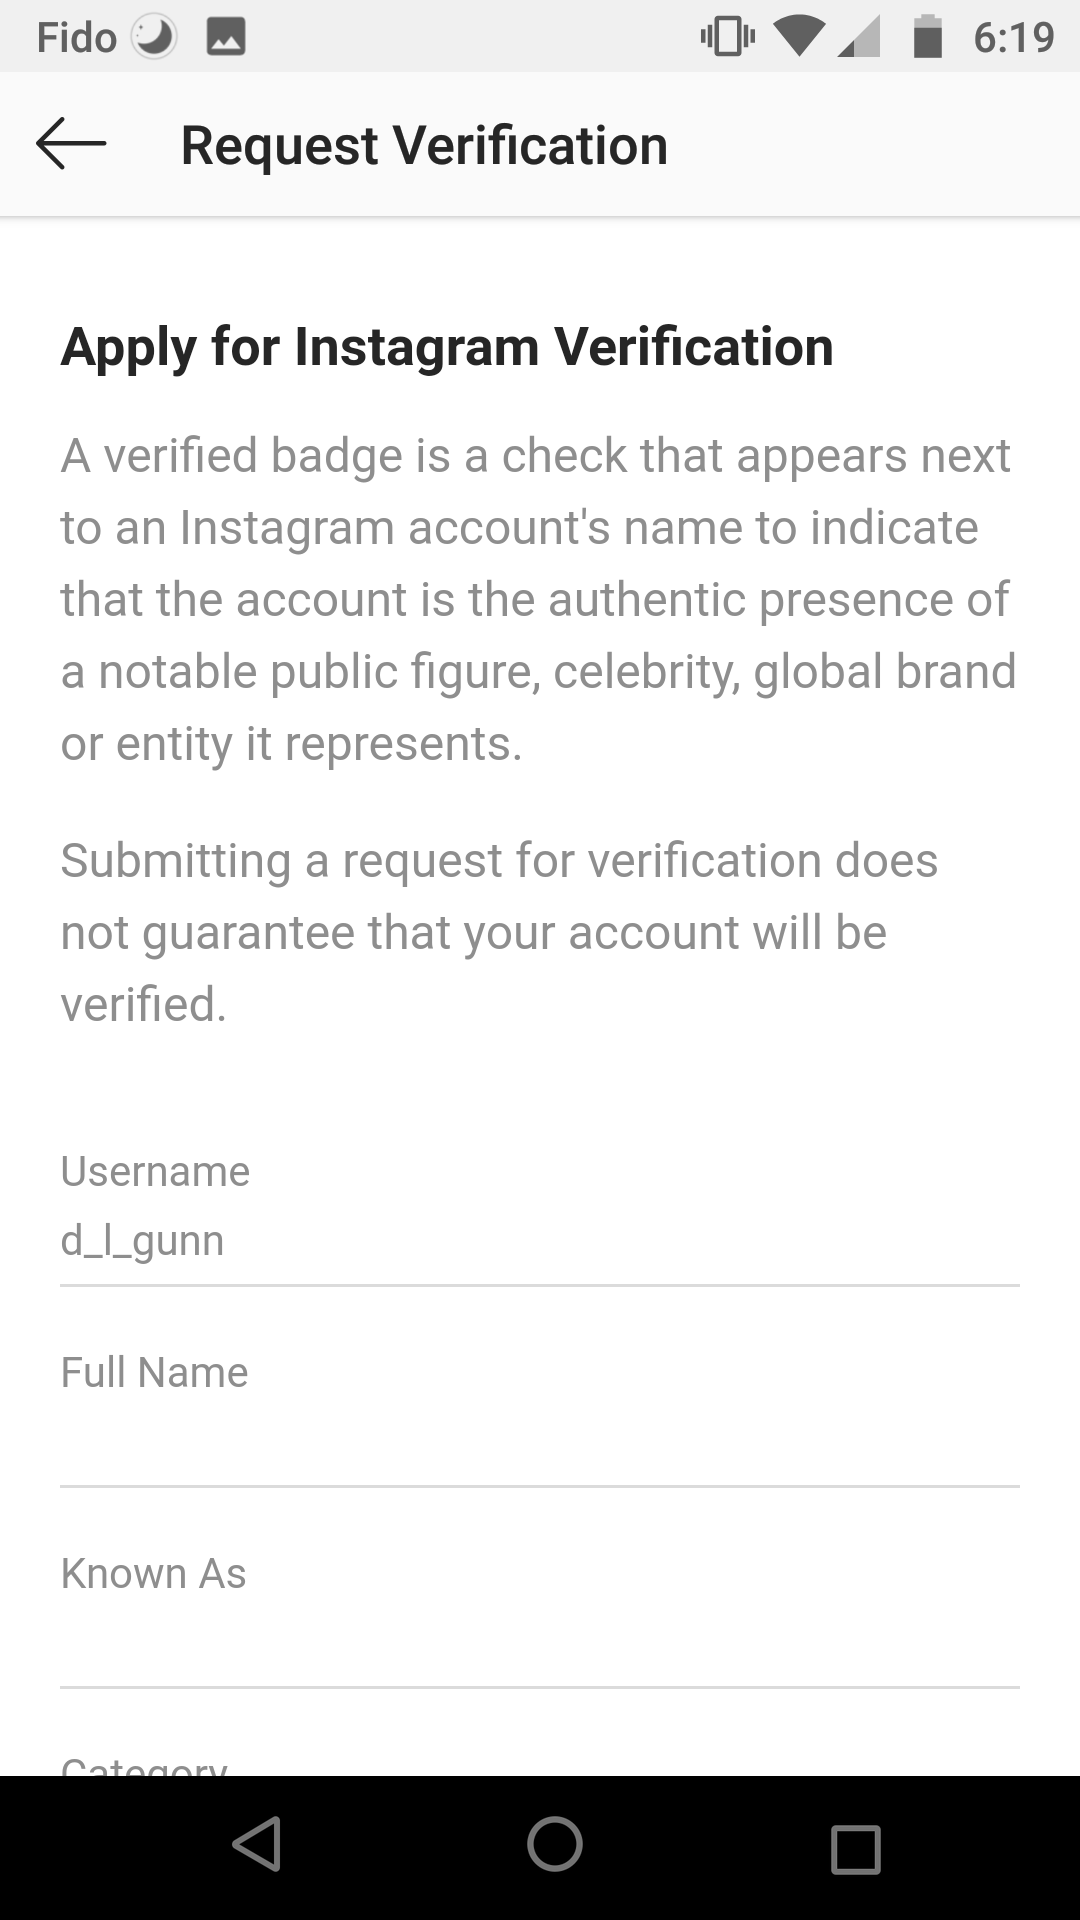 How to Get Verified on Instagram: Verification Request Form